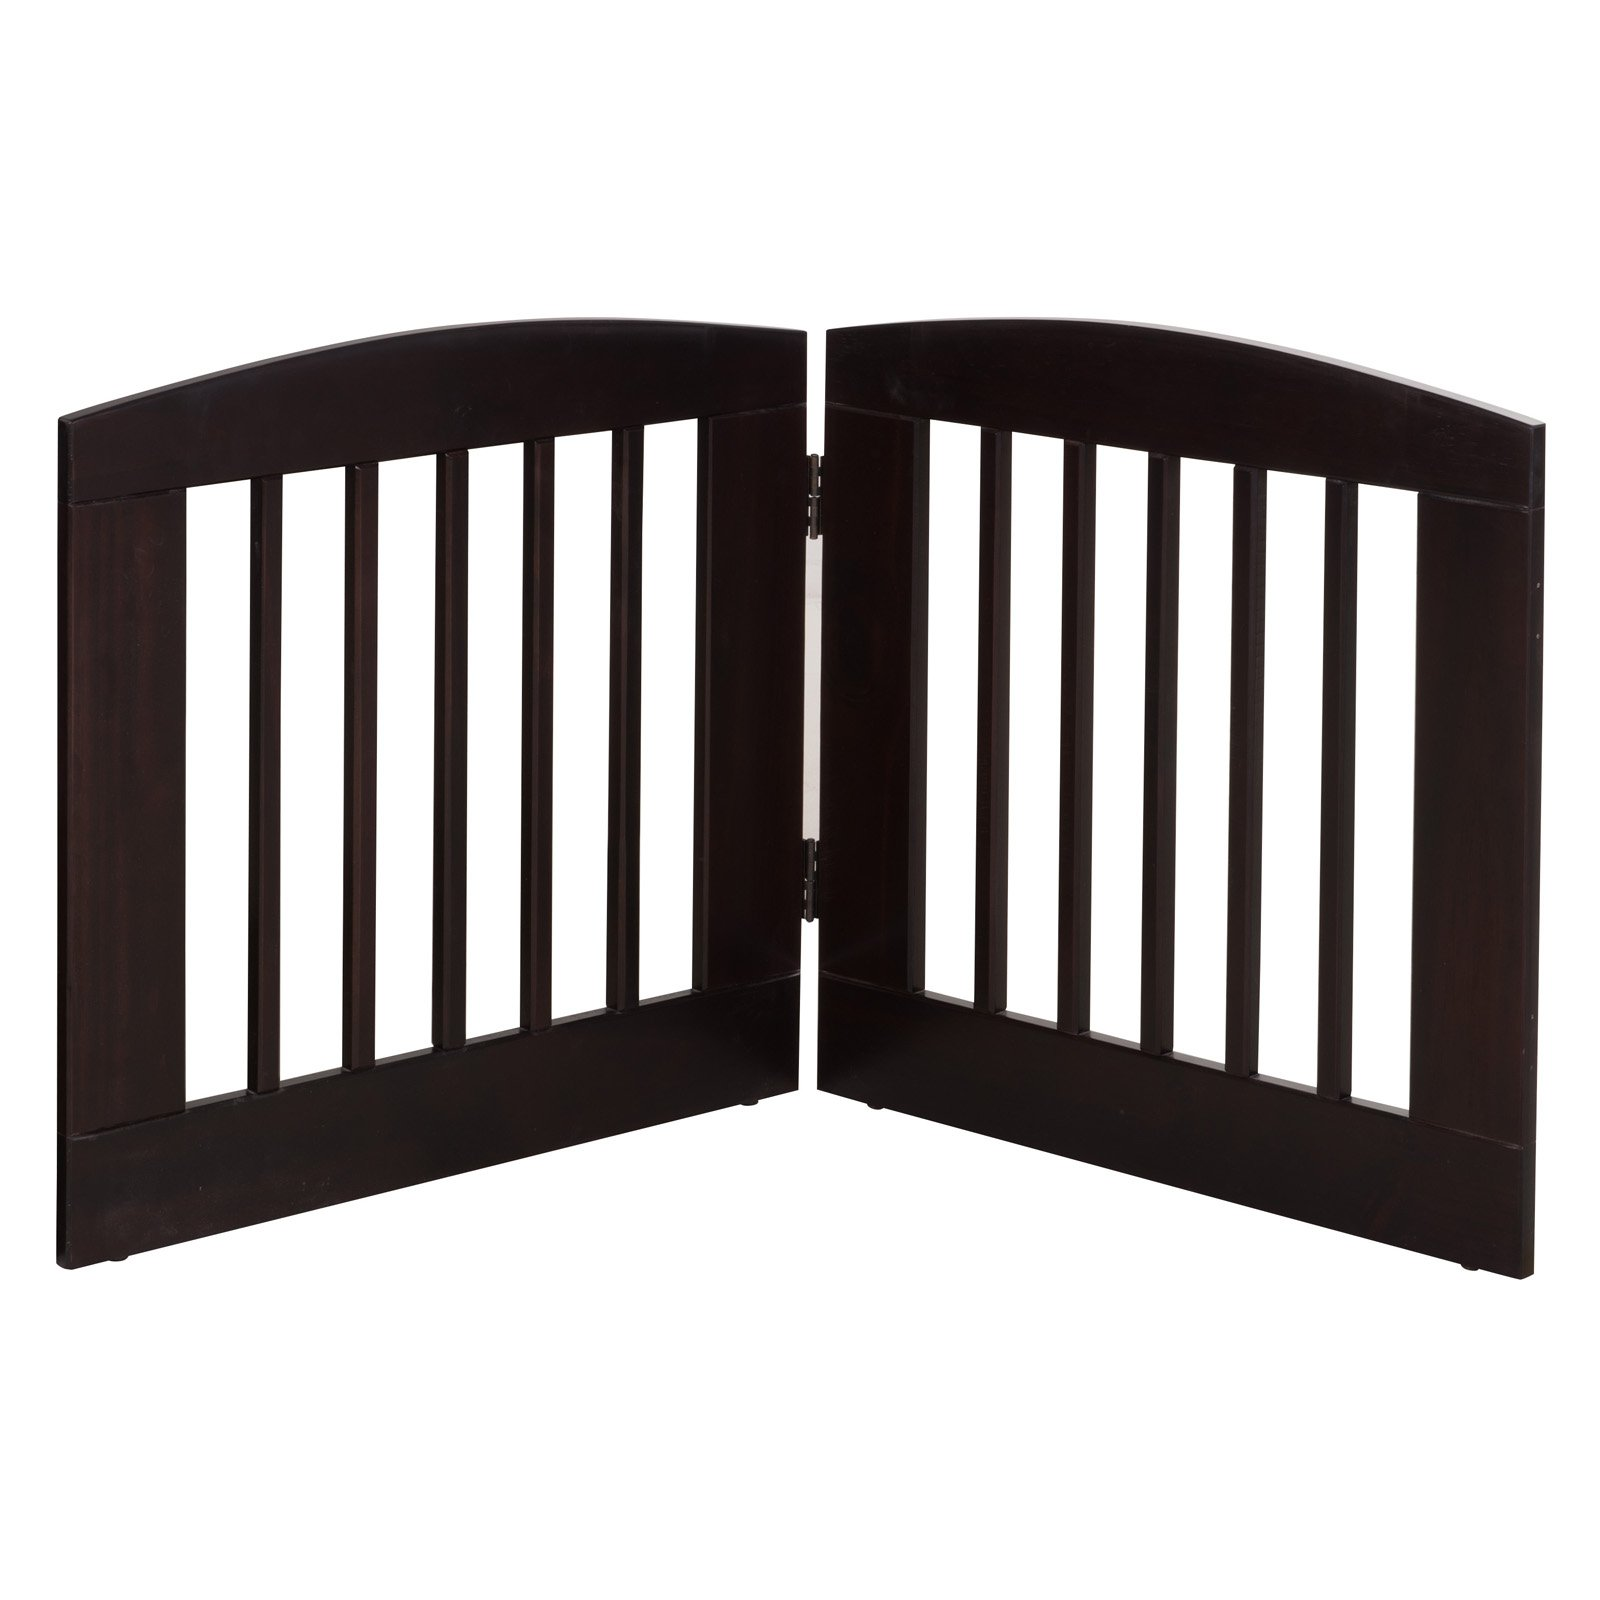 Ruffluv 2 Panel Expansion Pet Gate